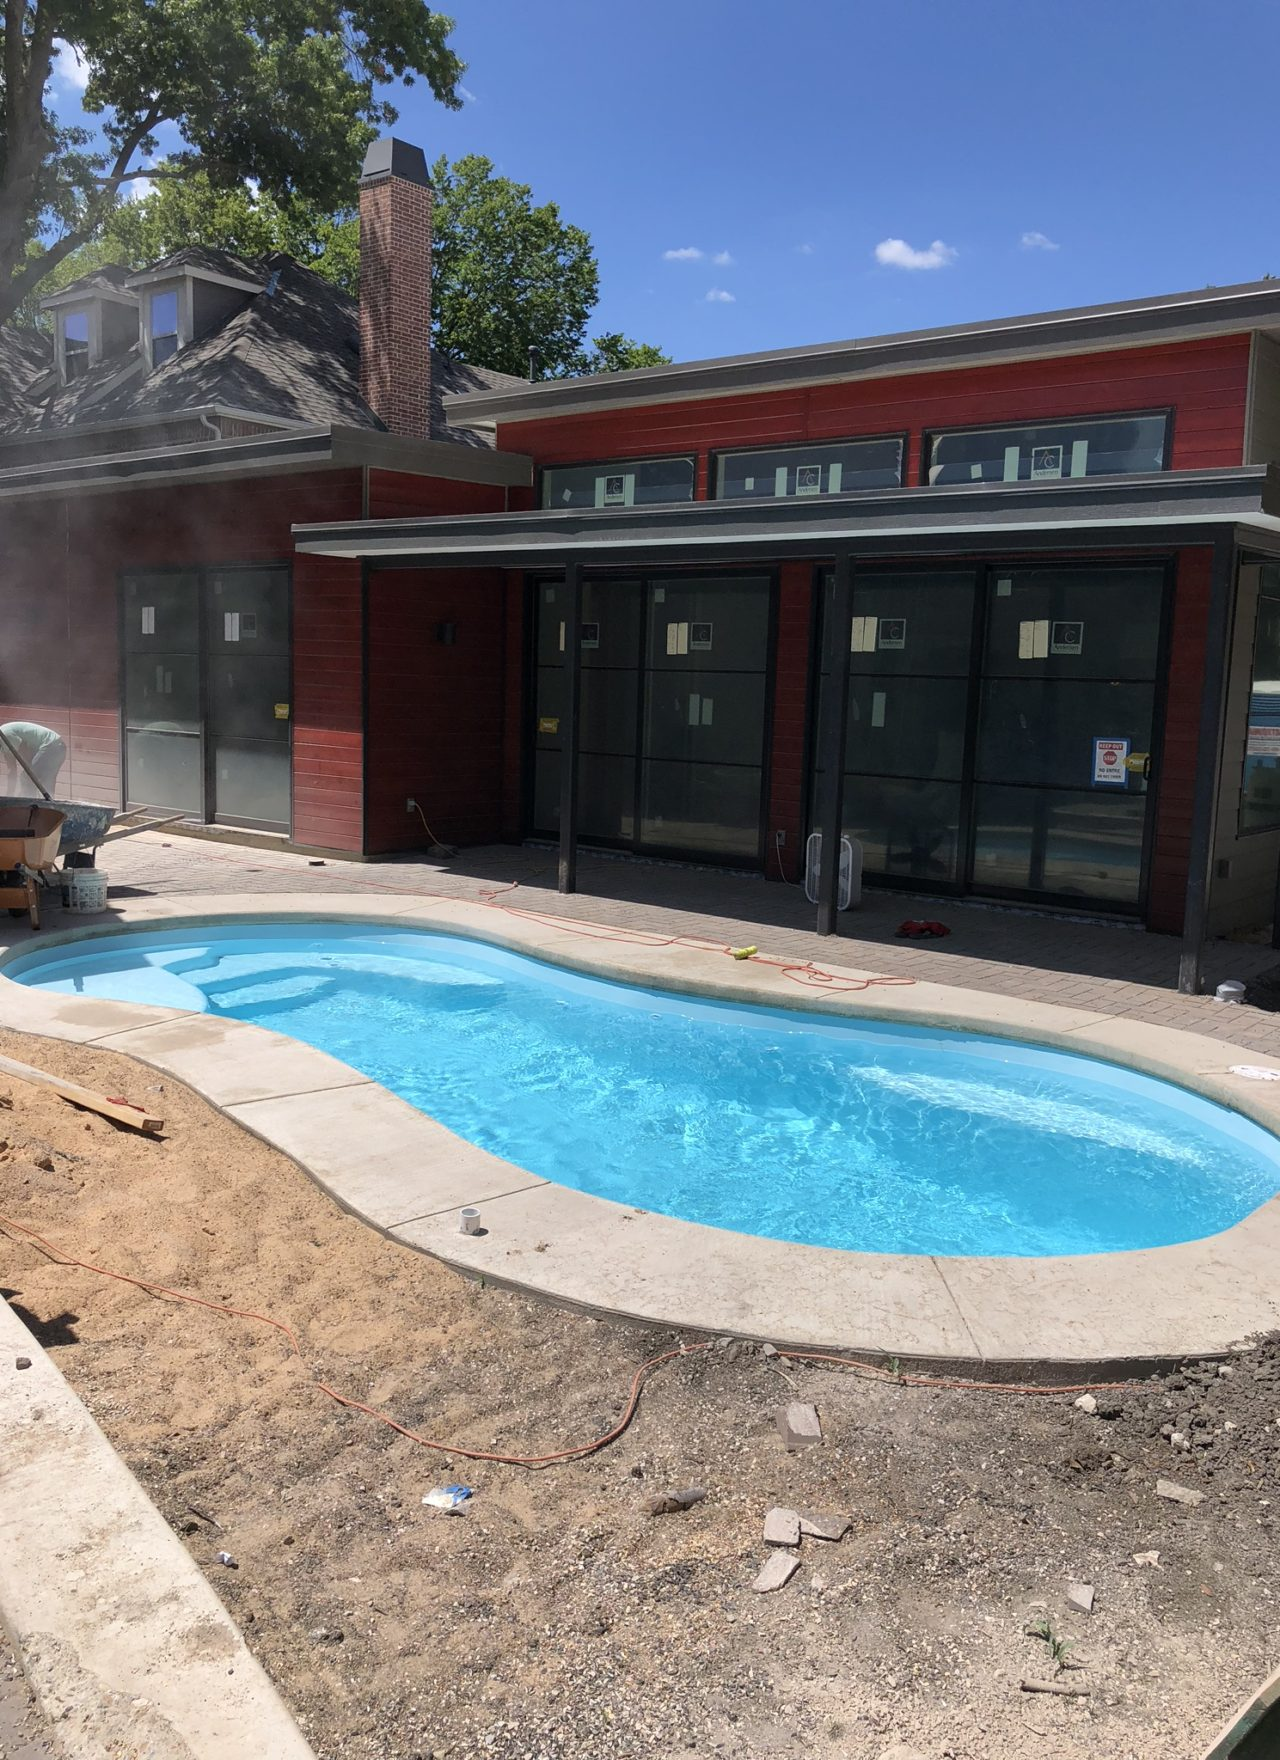 The Sundial Pool at University Park – Job Completion Photos